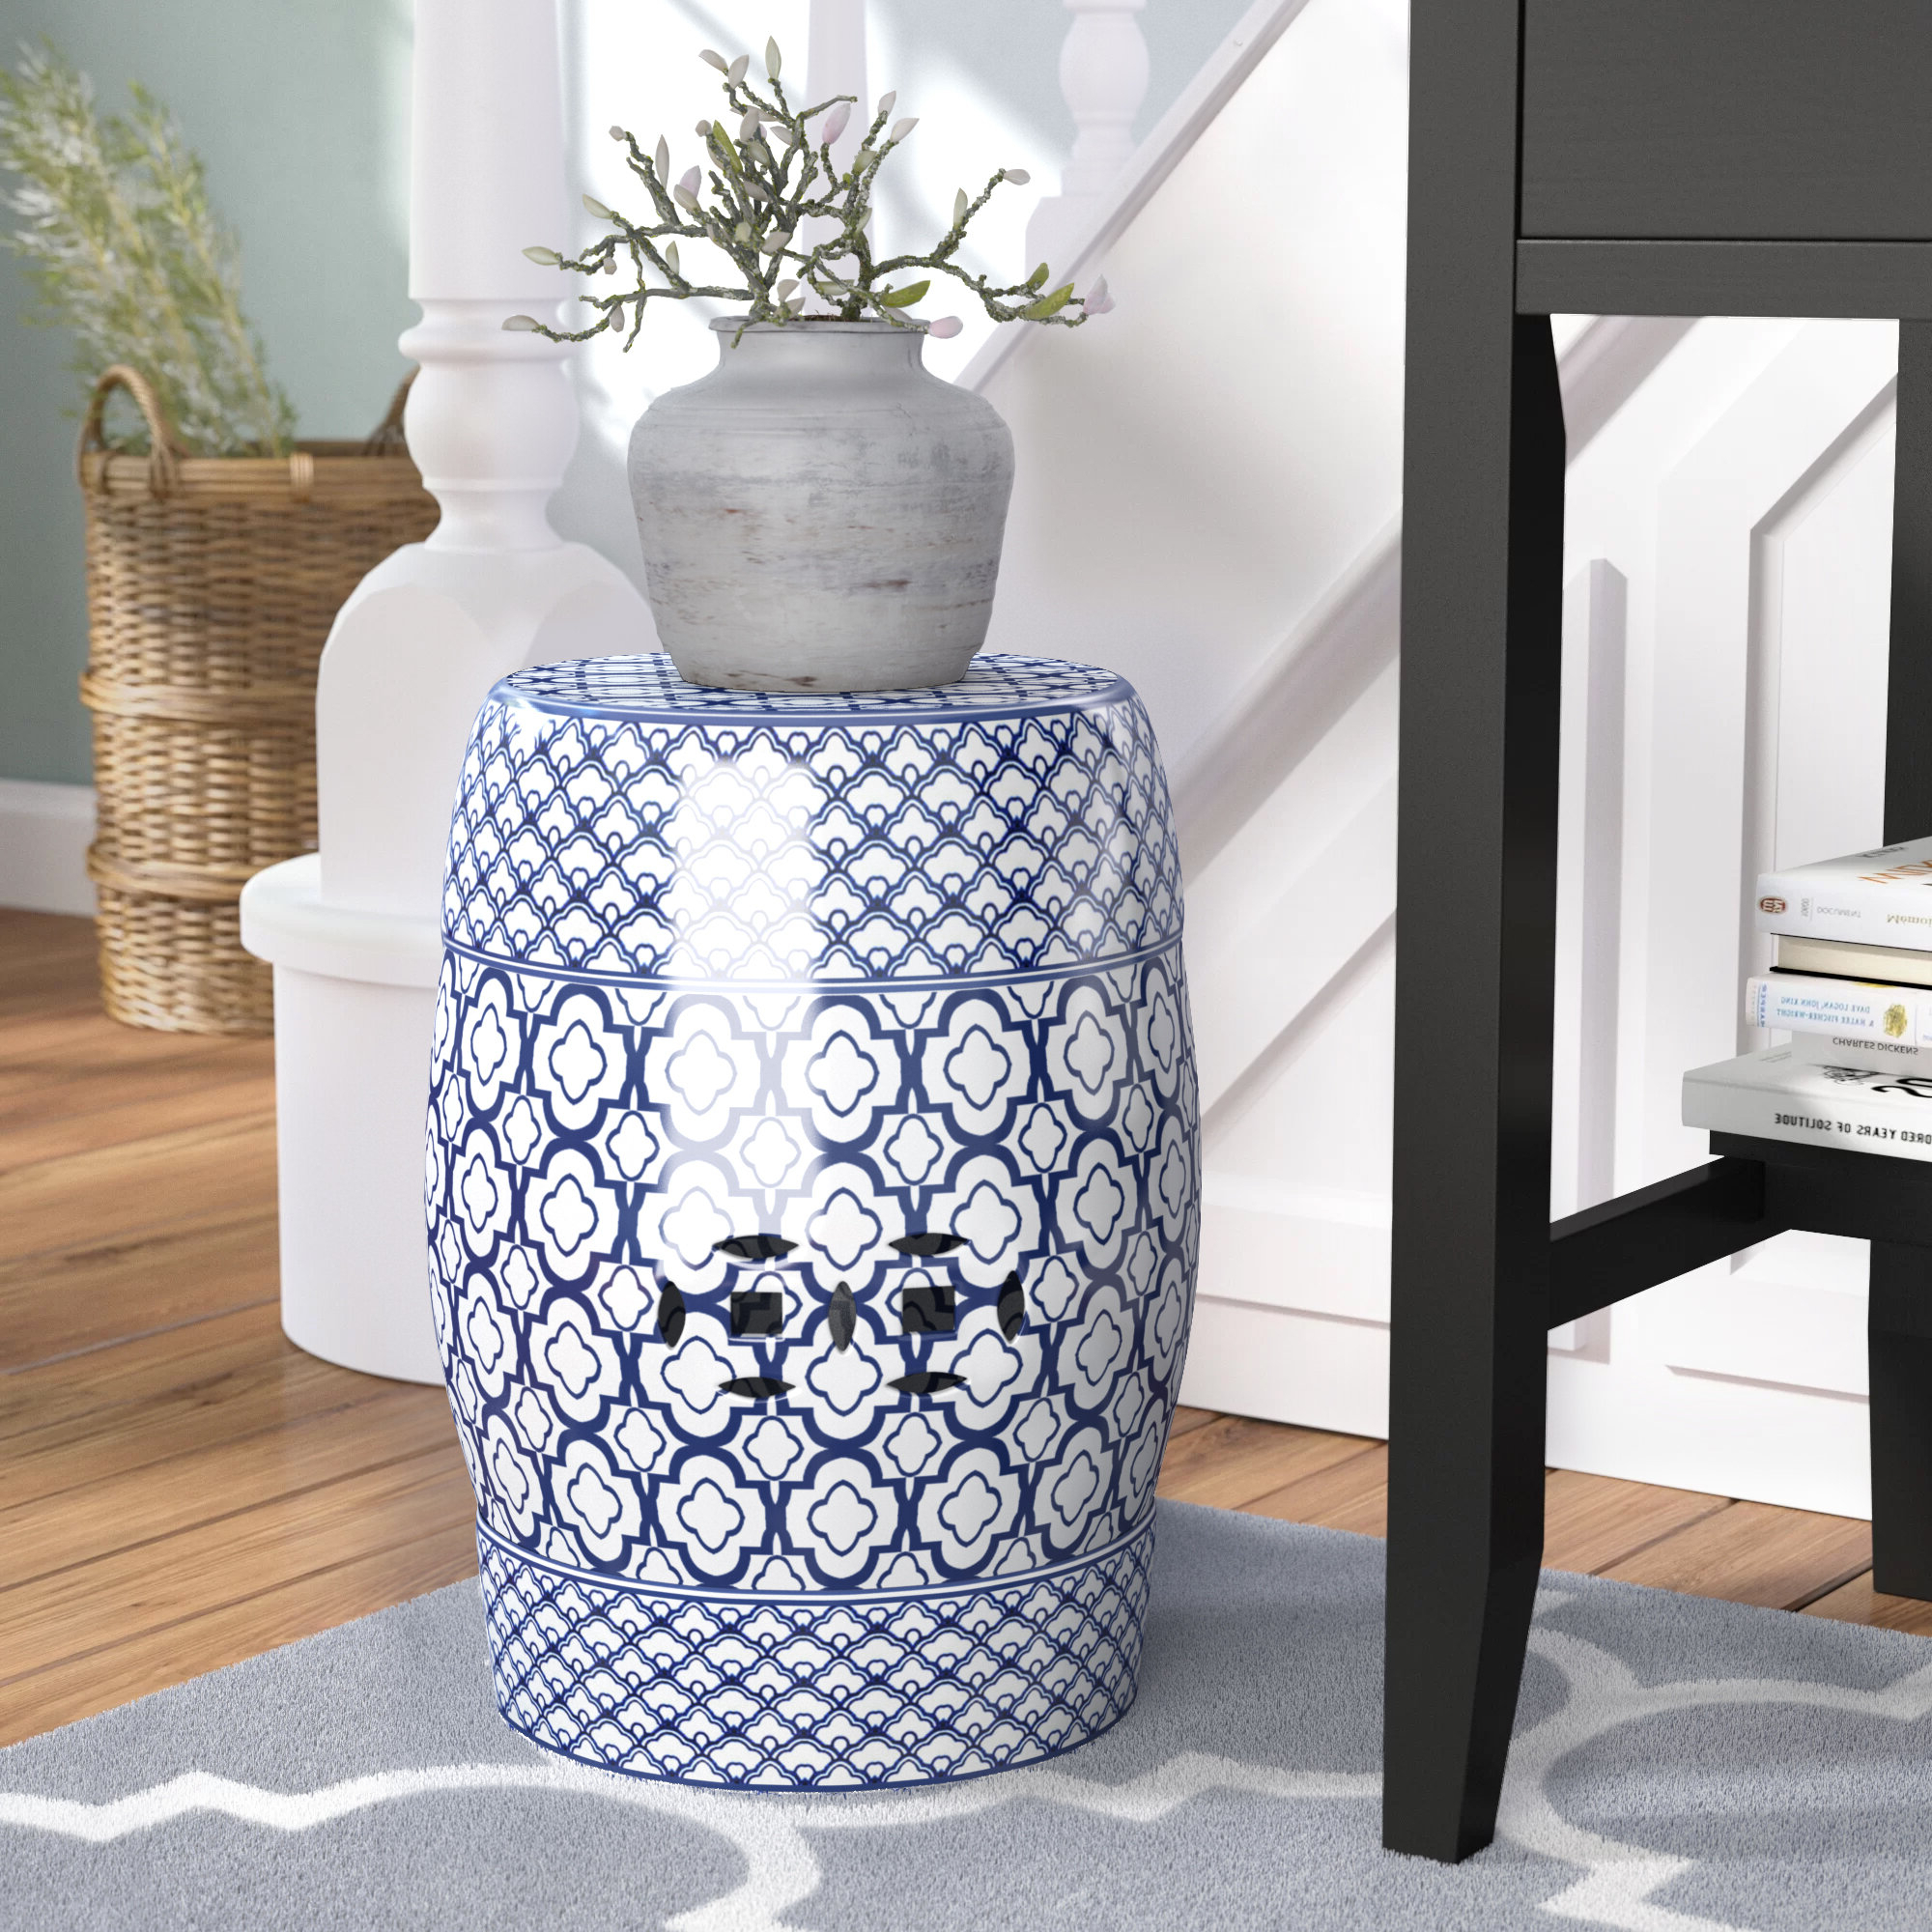 Wurster Ceramic Drip Garden Stools Intended For Well Known Blue Garden Accent Stools You'll Love In (View 5 of 30)